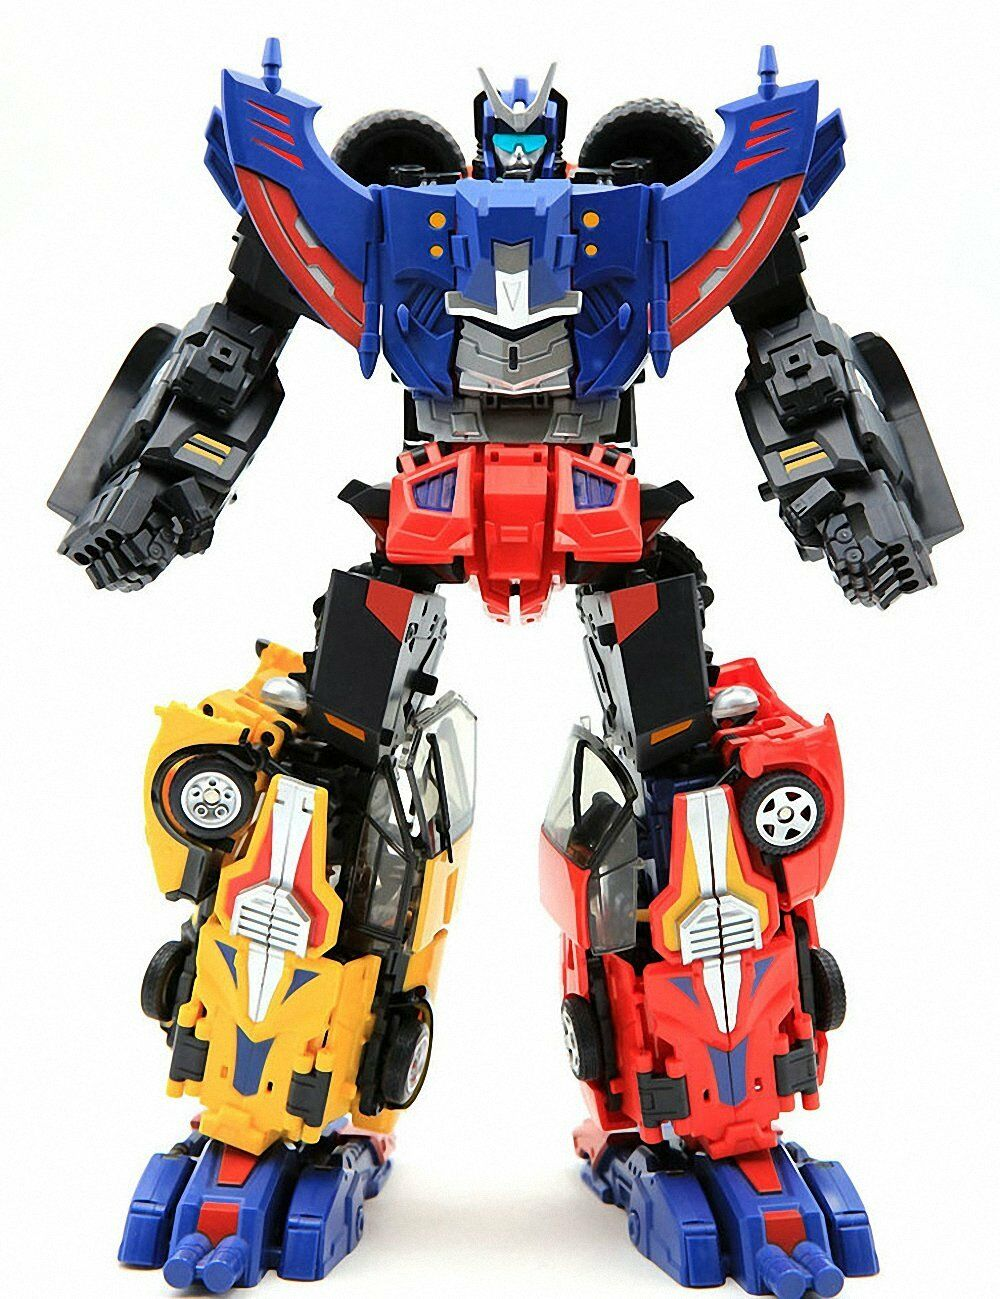 TFC Autobots Transformers Victory Road Caesar Full Set-The king of the land New